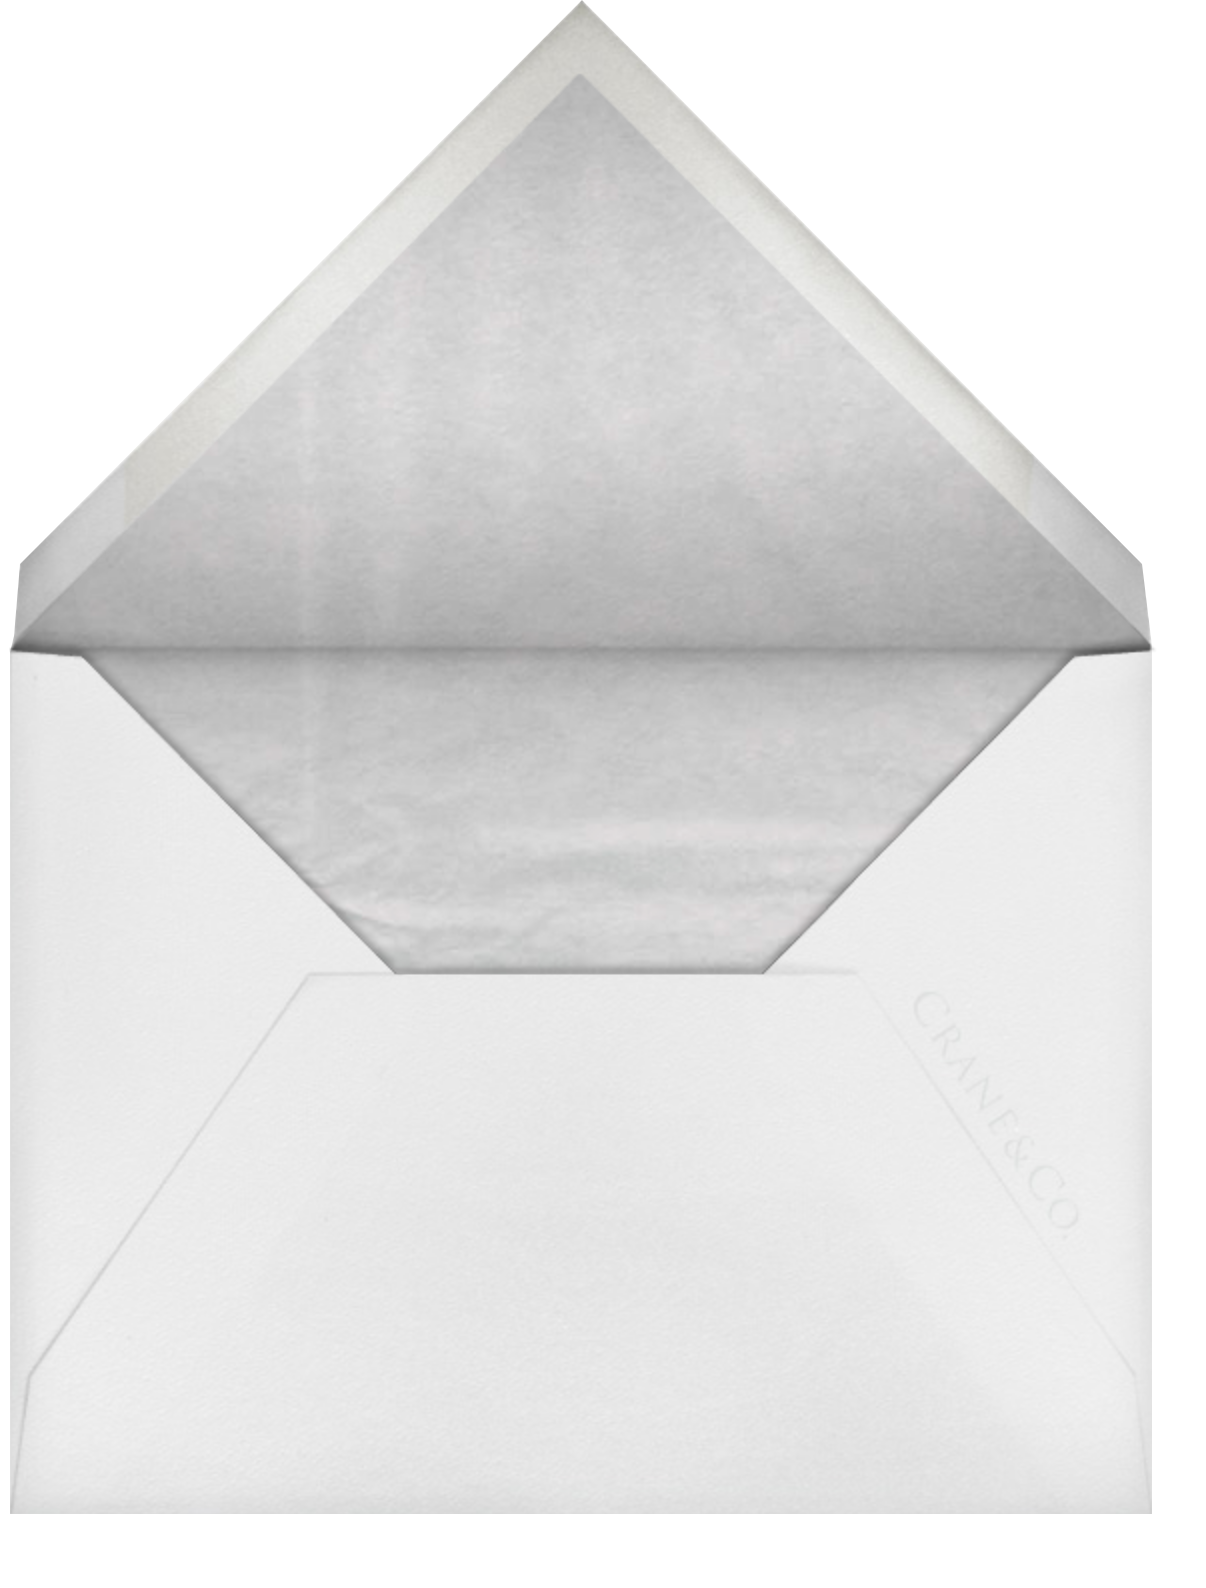 Thérèse I (Stationery) - Platinum - Paperless Post - Personalized stationery - envelope back